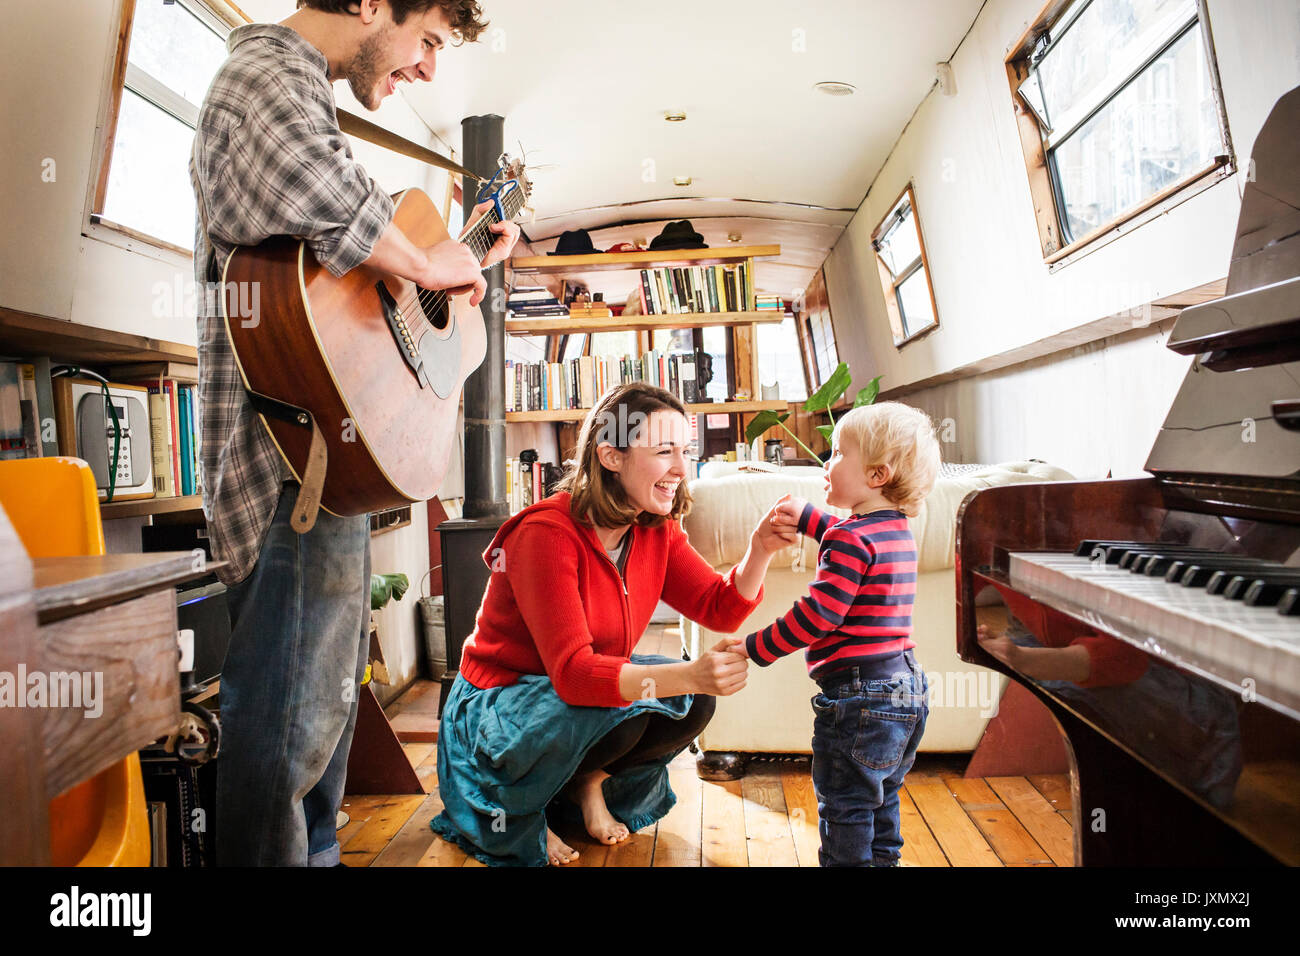 Family with baby boy living on barge playing guitar and dancing - Stock Image